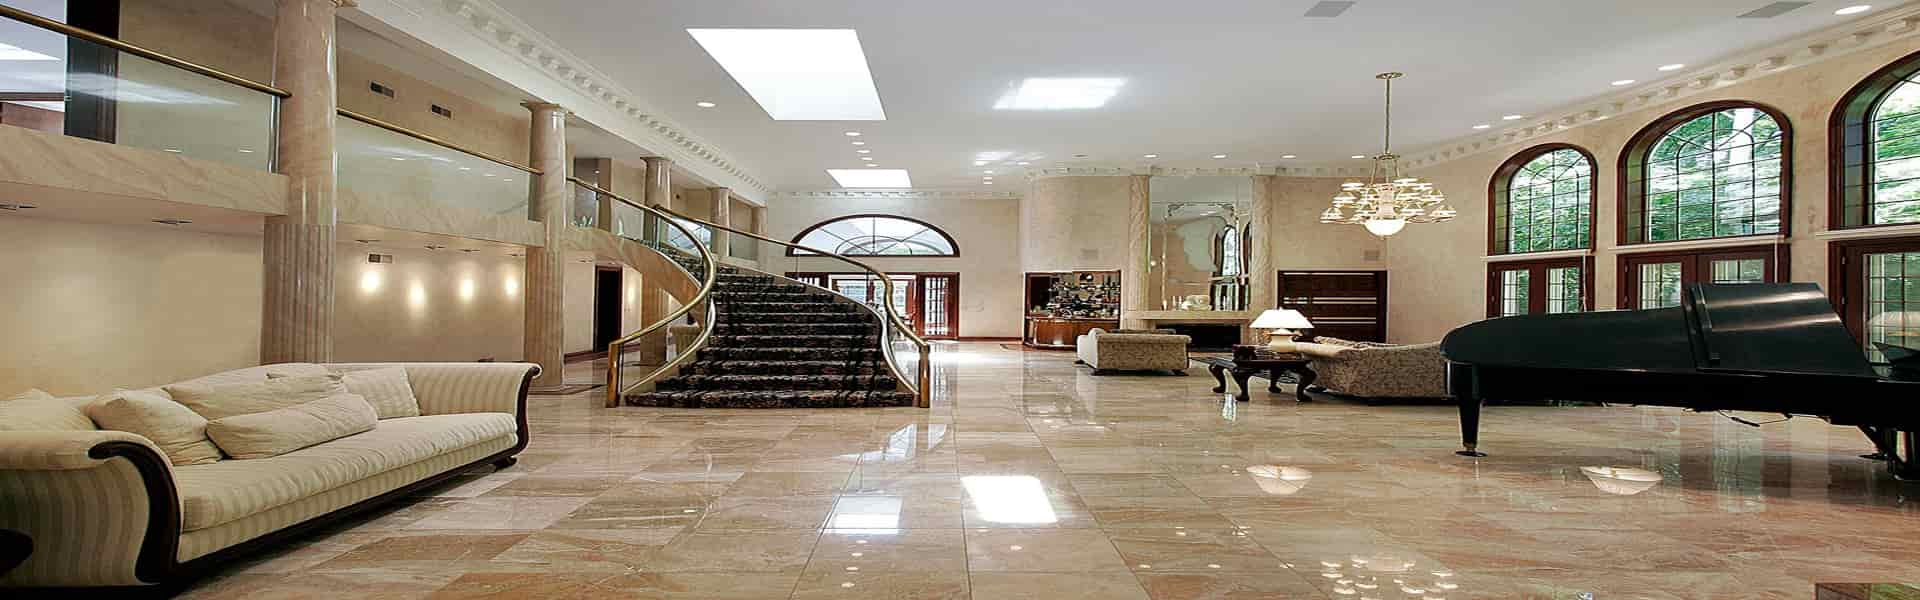 Useful Tips For Choosing Natural Stone Products